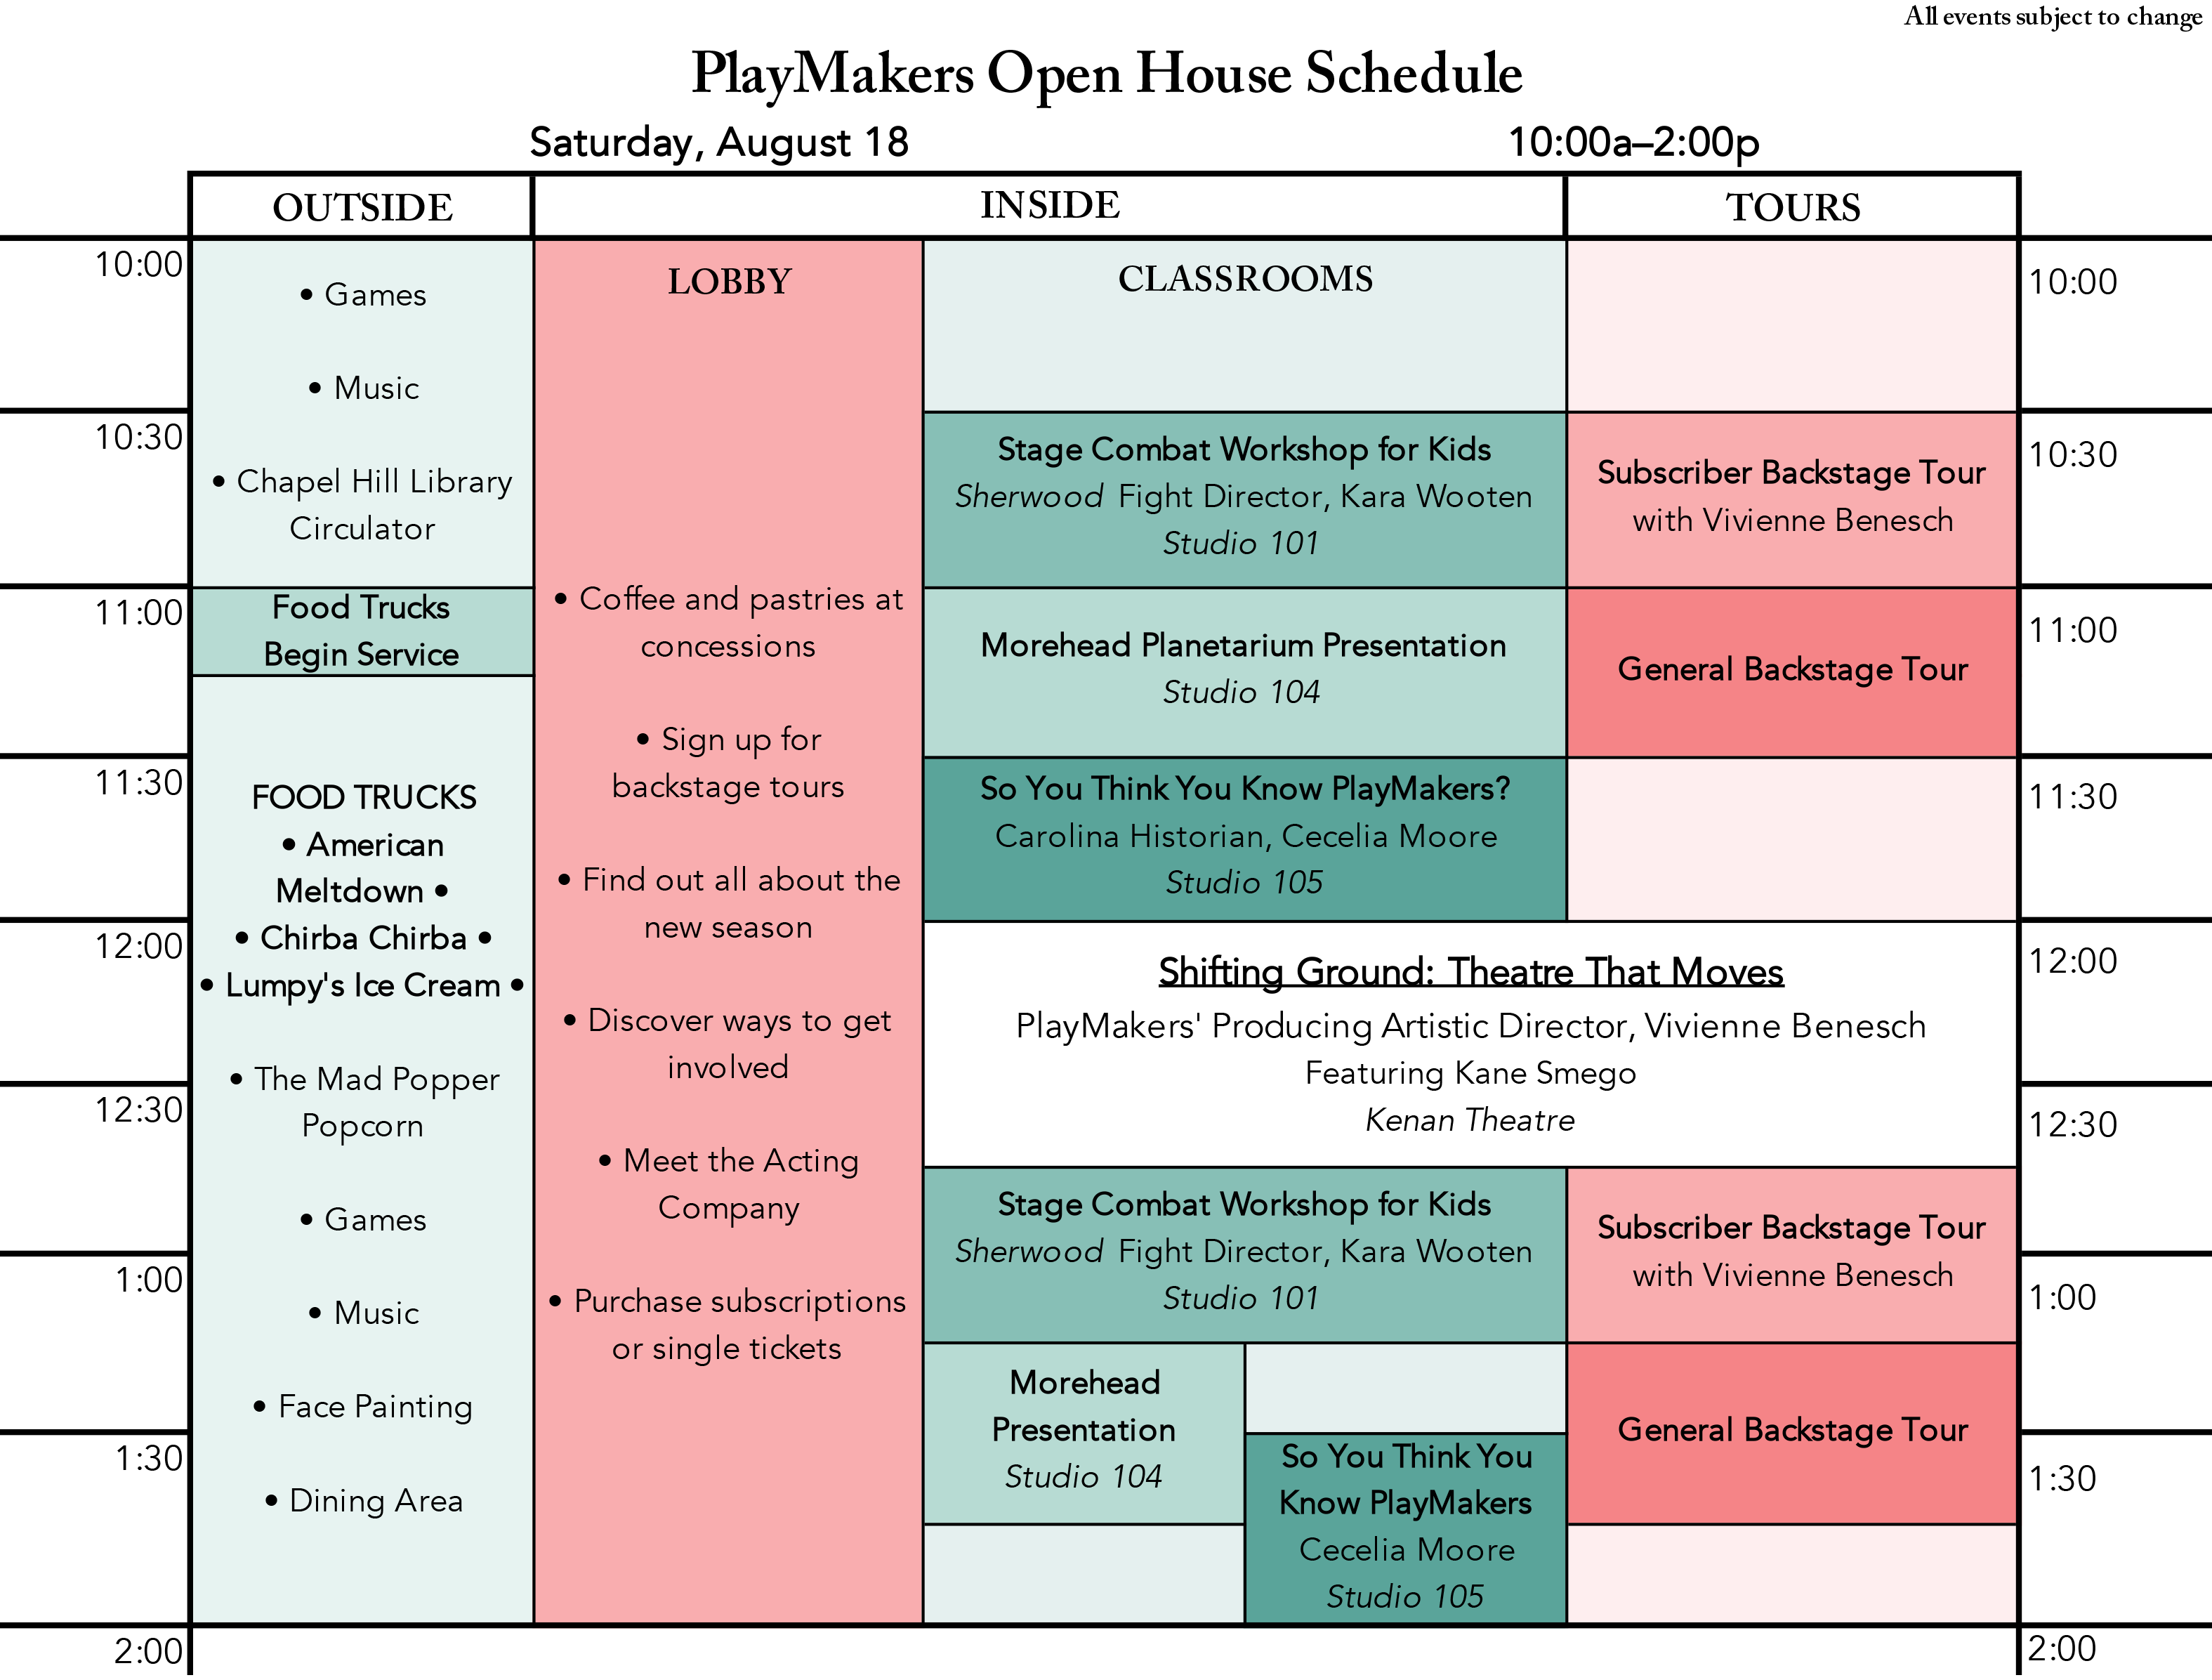 PlayMakers Open House Itinerary 2018